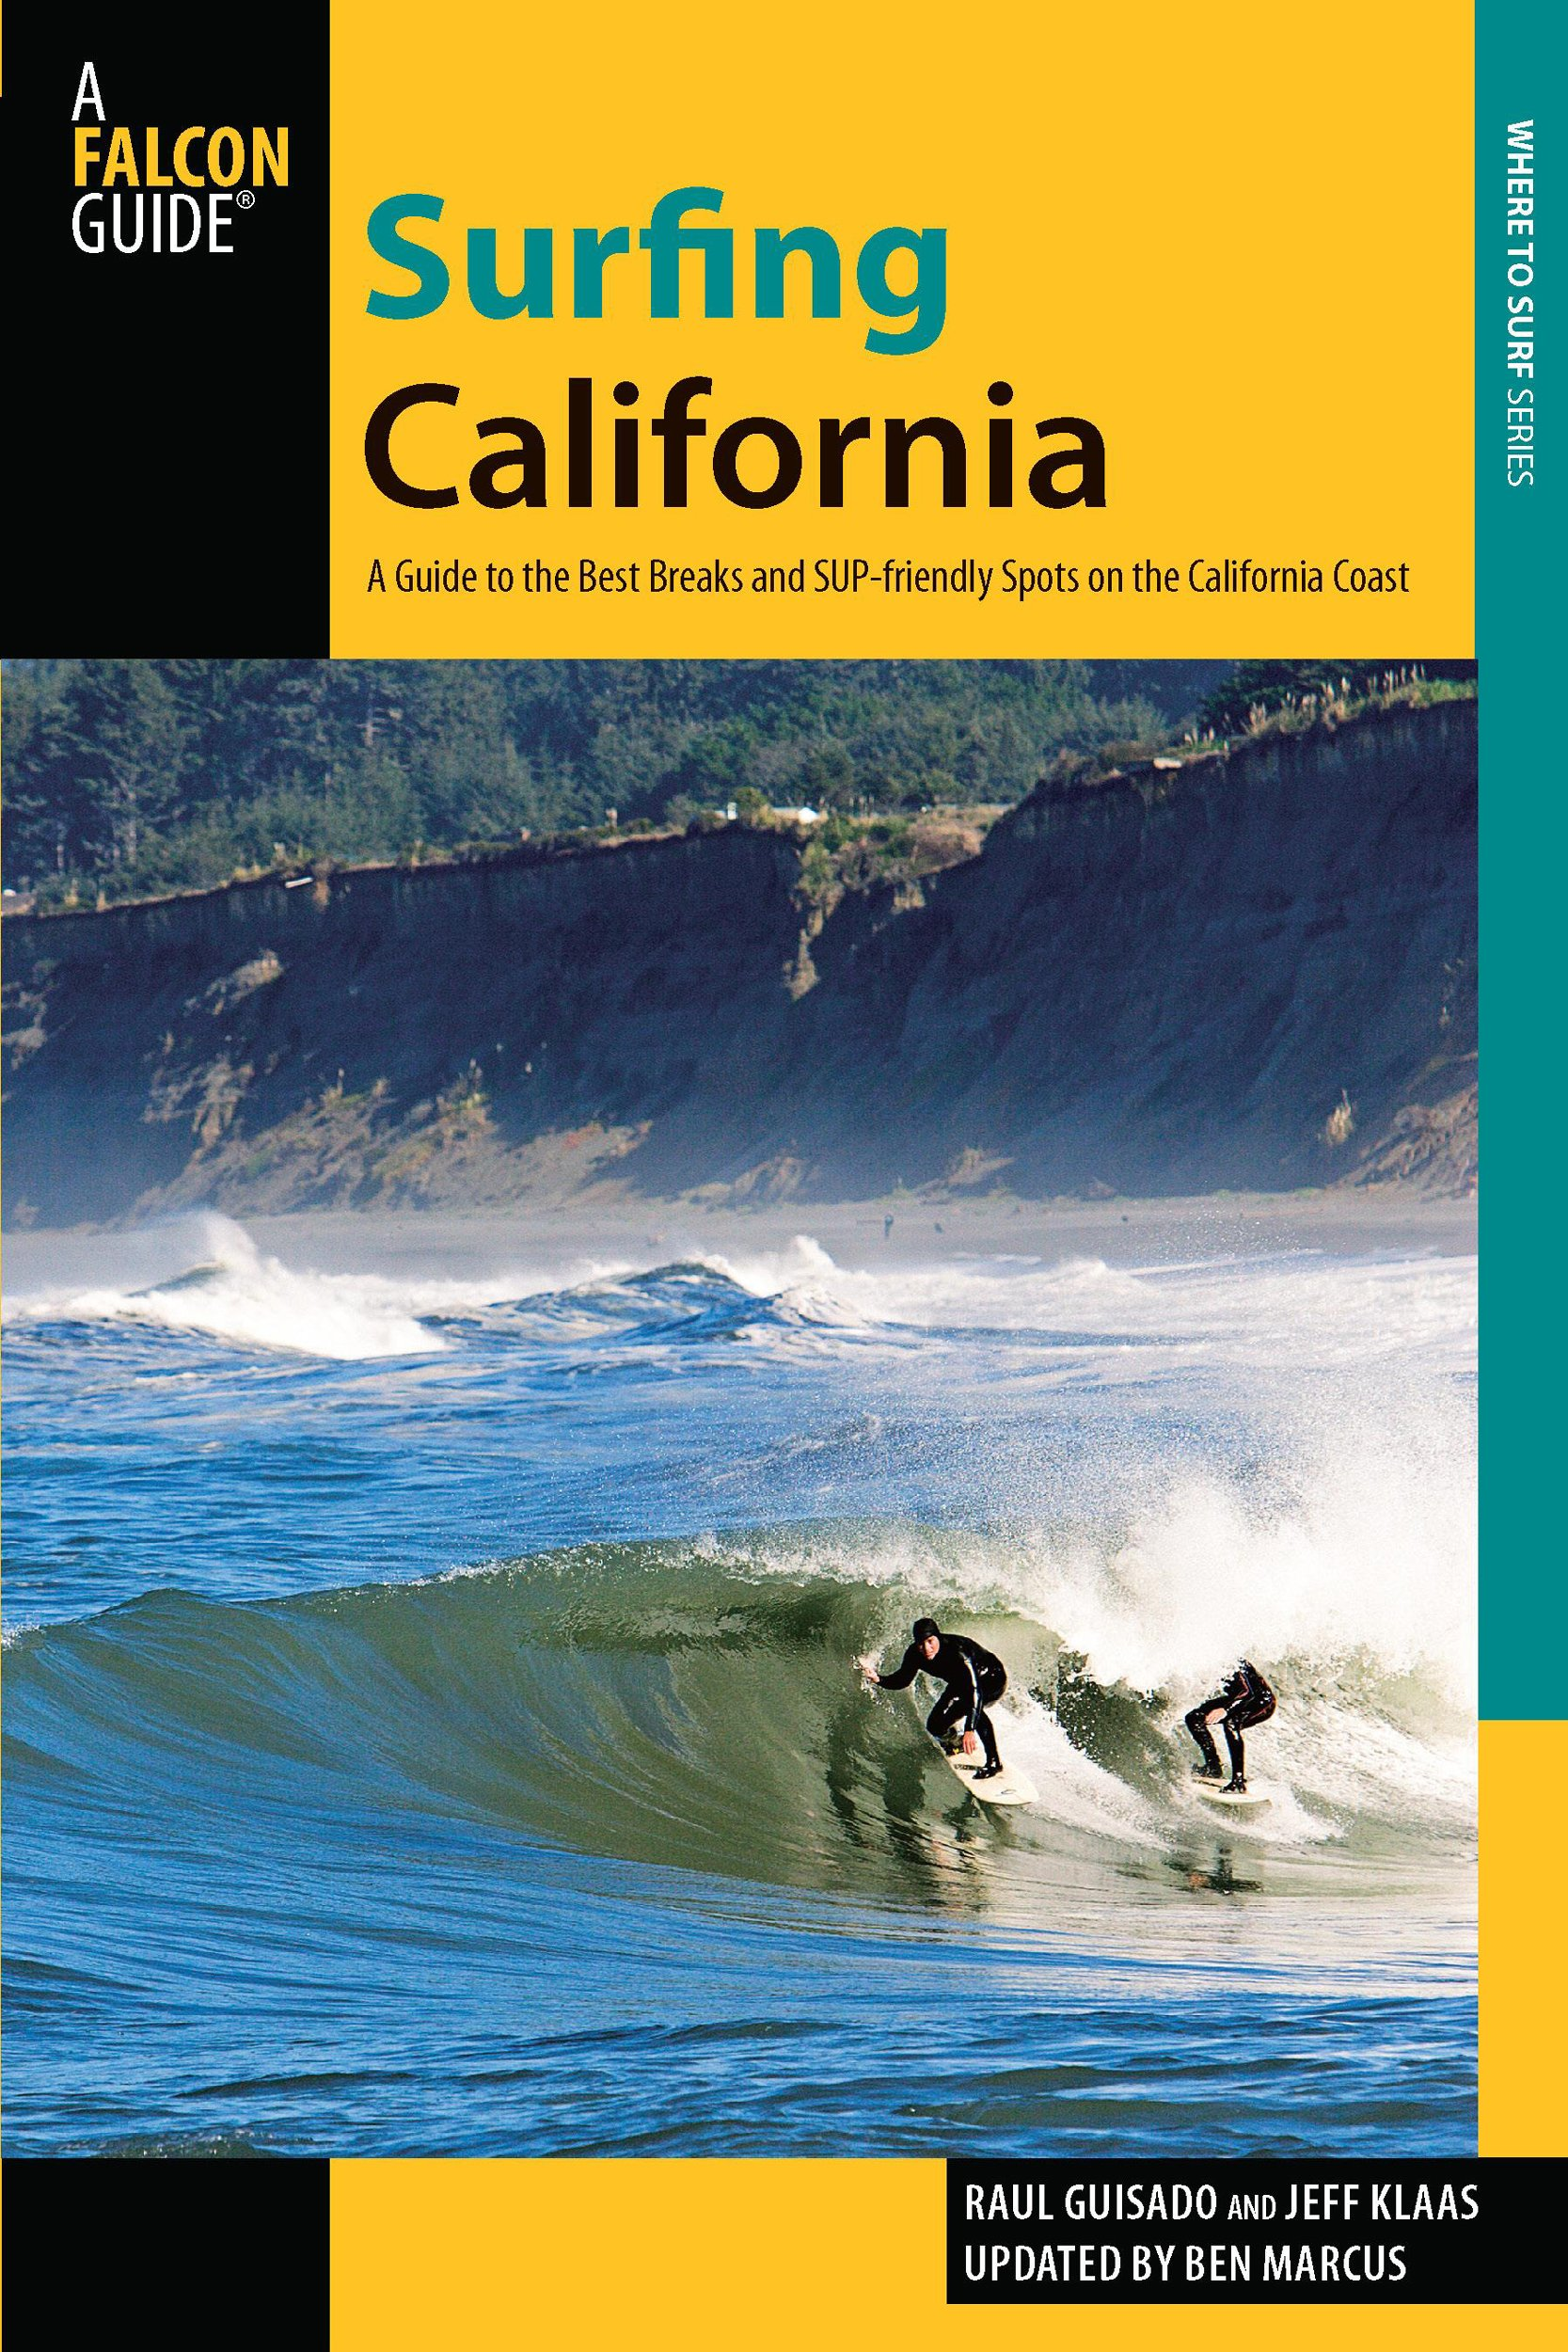 Surfing California: A Guide To The Best Breaks And Sup-Friendly Spots On The California Coast Surfing Series: Amazon.es: Guisado, Raul, Klaas, Jeff, Marcus, Ben: Libros en idiomas extranjeros